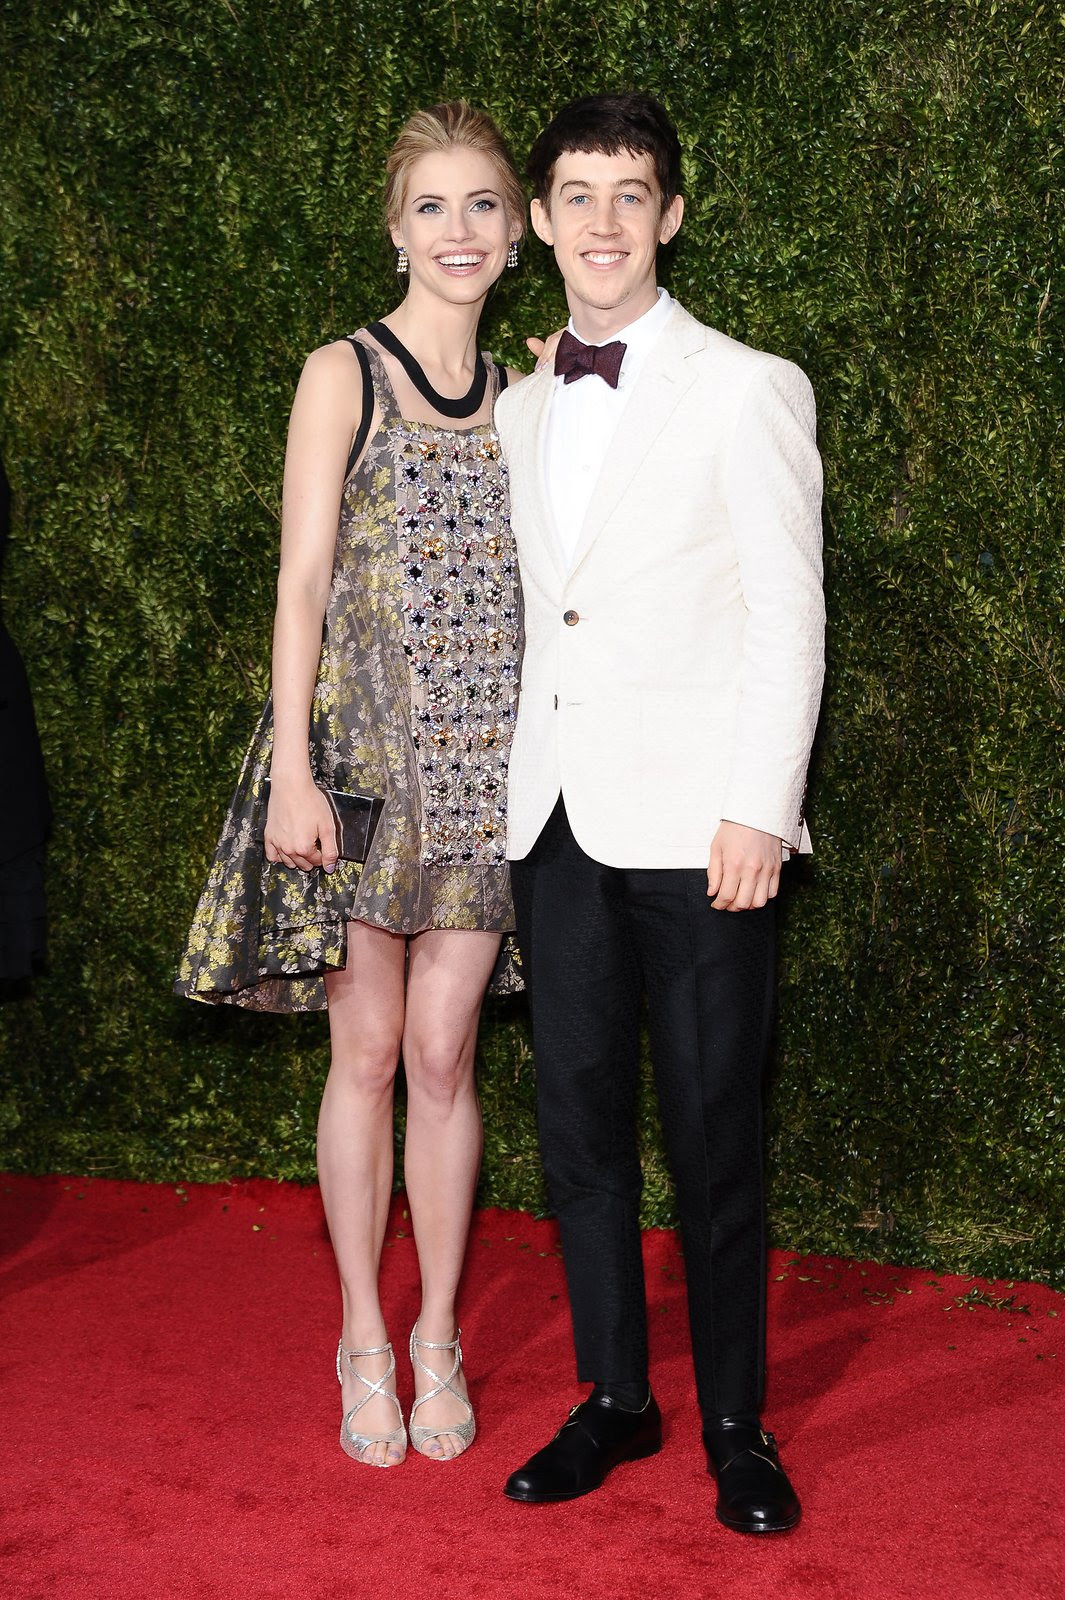 http://media.vogue.com/r/h_1600,w_1240/2015/06/08/walllis-currie-wood-alex-sharp-tonys-red-carpet.jpg